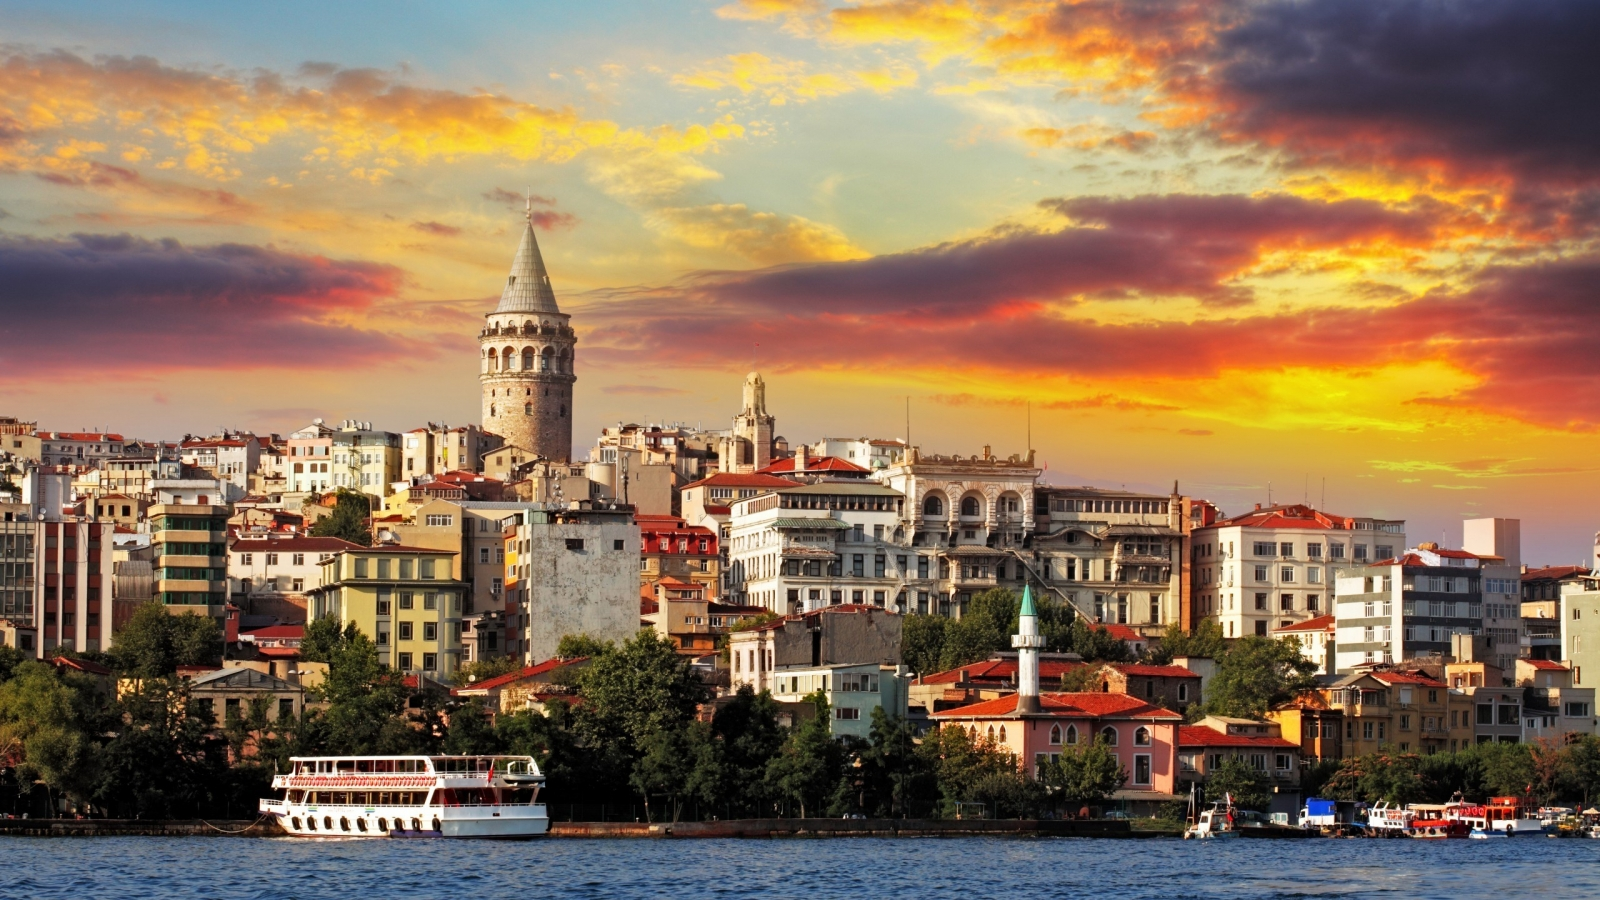 Sunset in Istambul for 1600 x 900 HDTV resolution